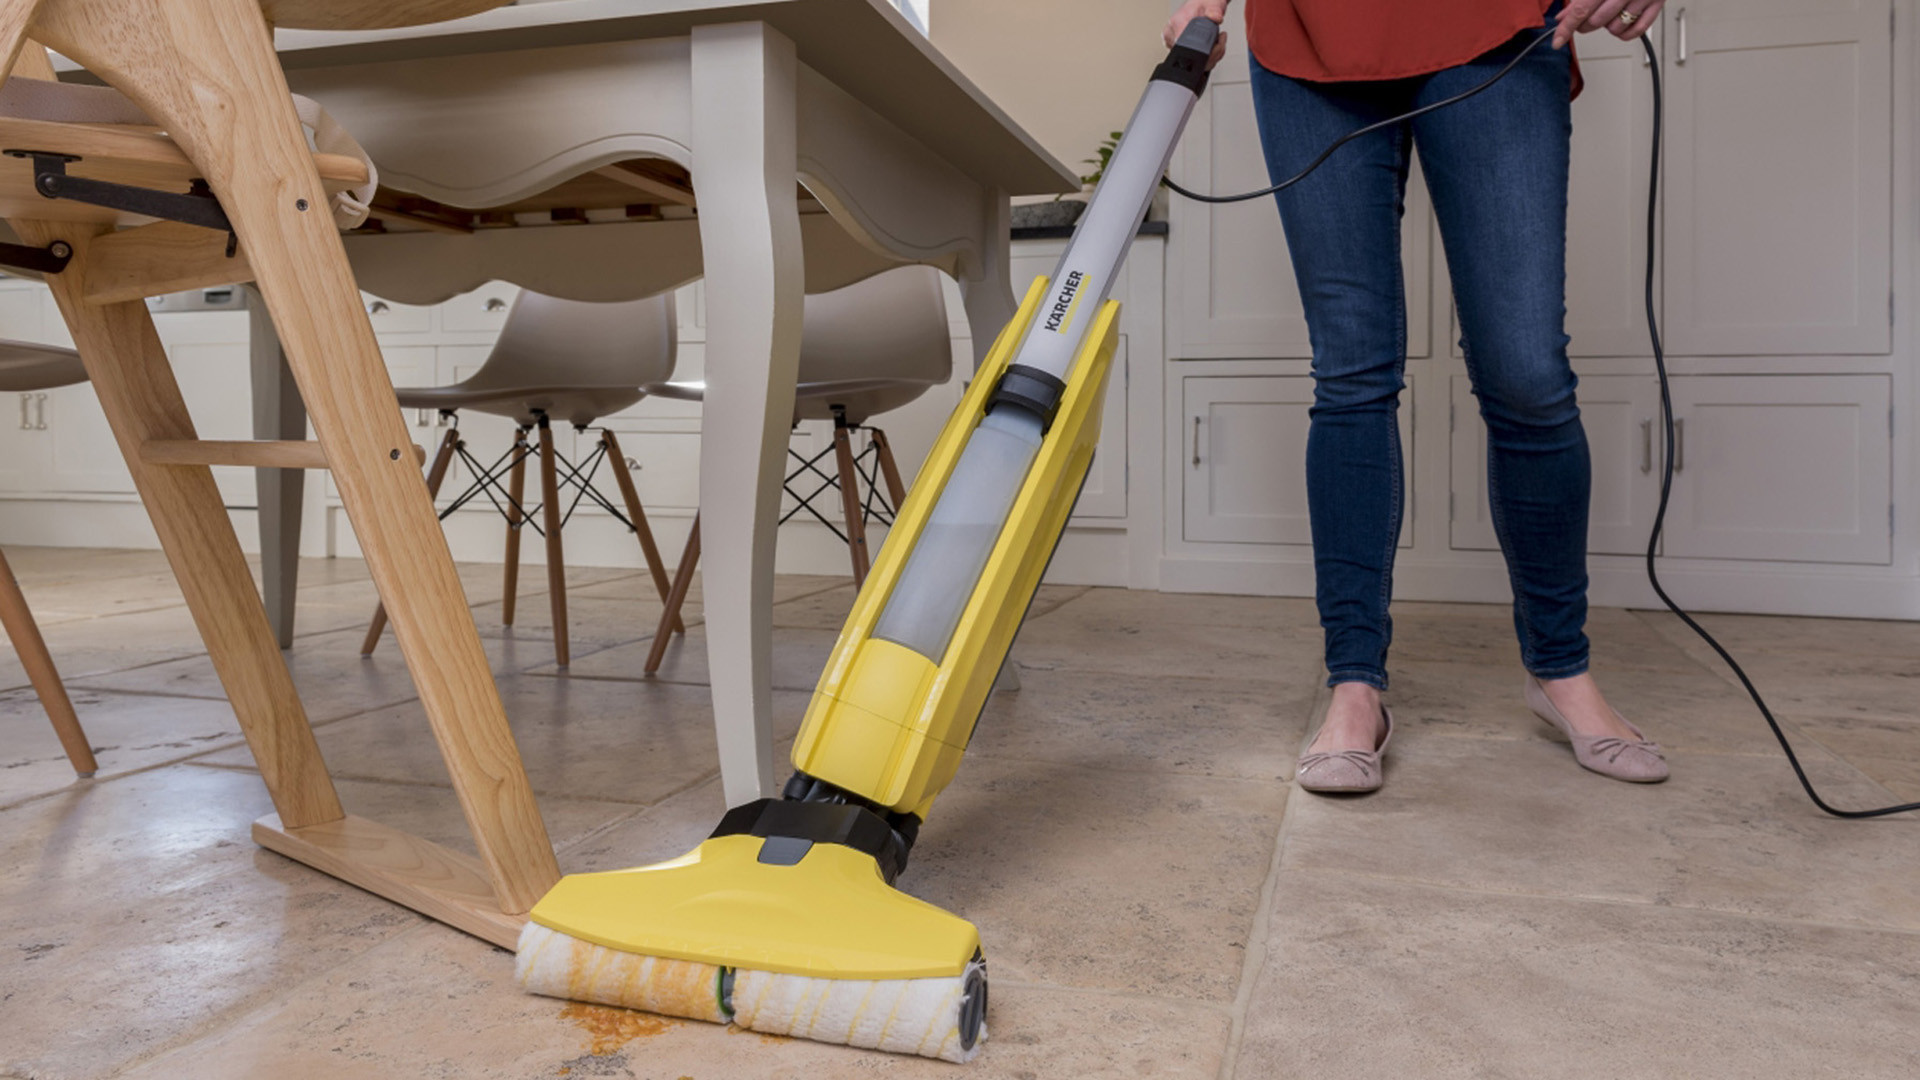 best vacuum for pet hair and hardwood floors 2017 of karcher fc5 hard floor cleaner review trusted reviews in karcher fc5 5 1